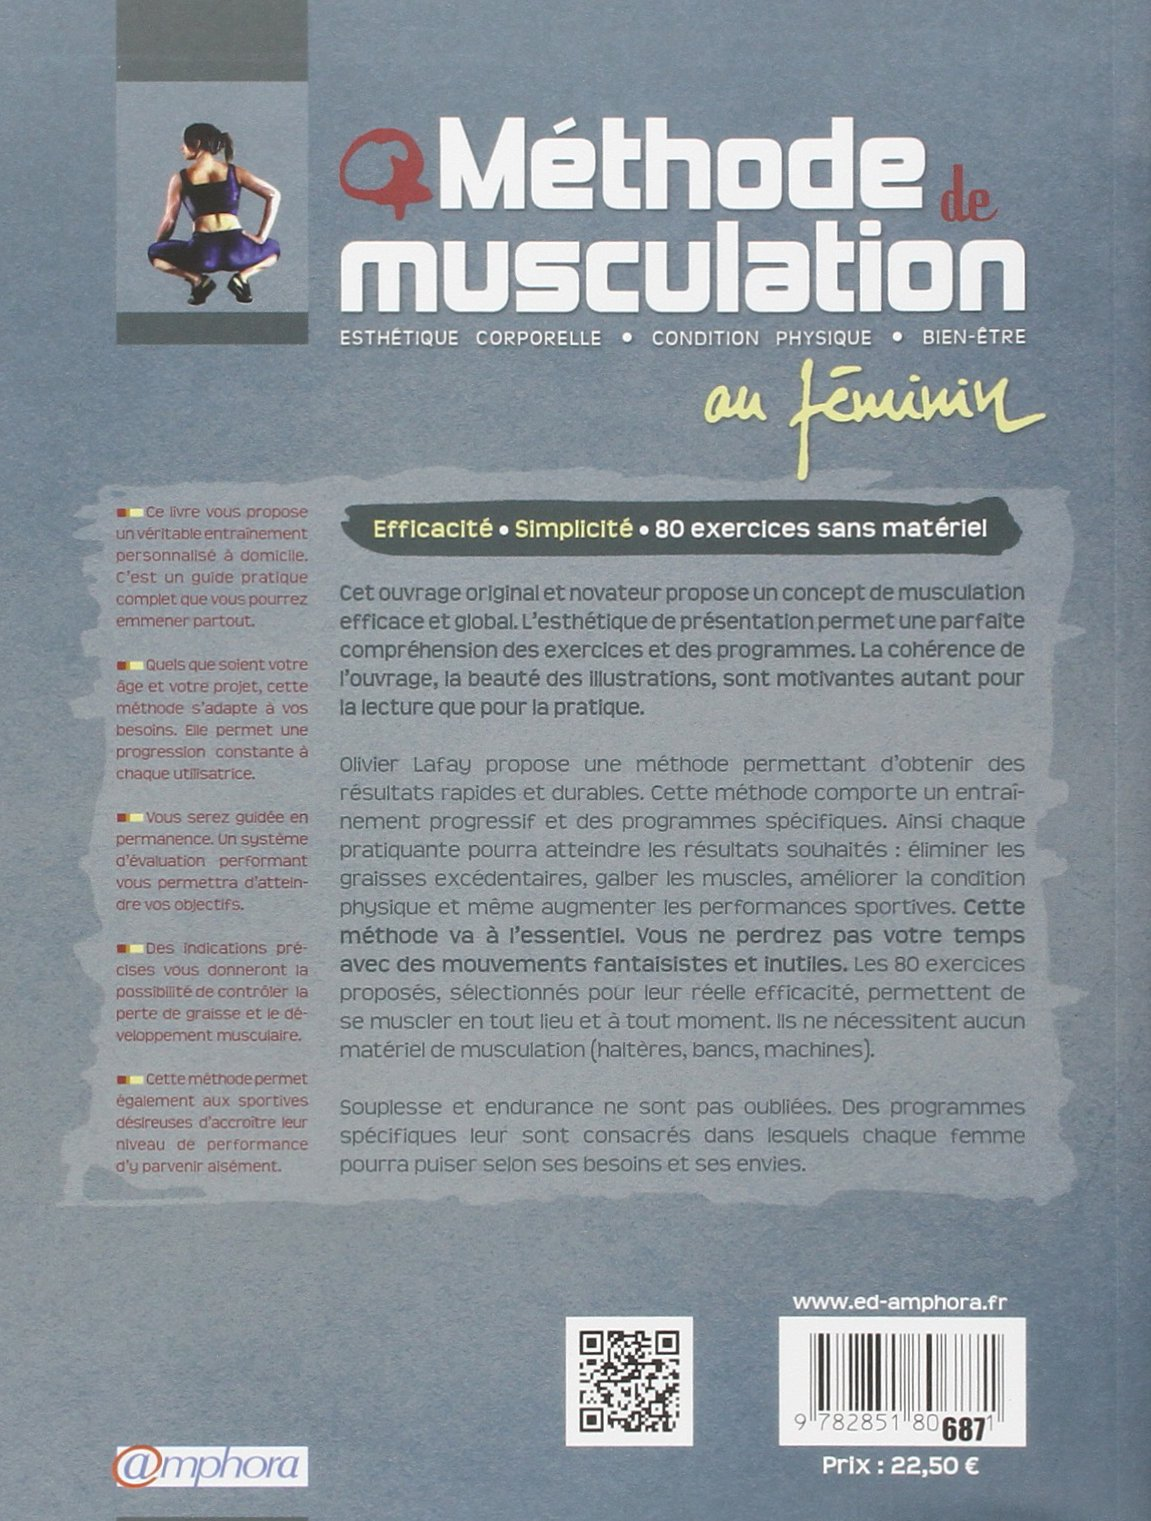 methode de musculation au feminin lafay